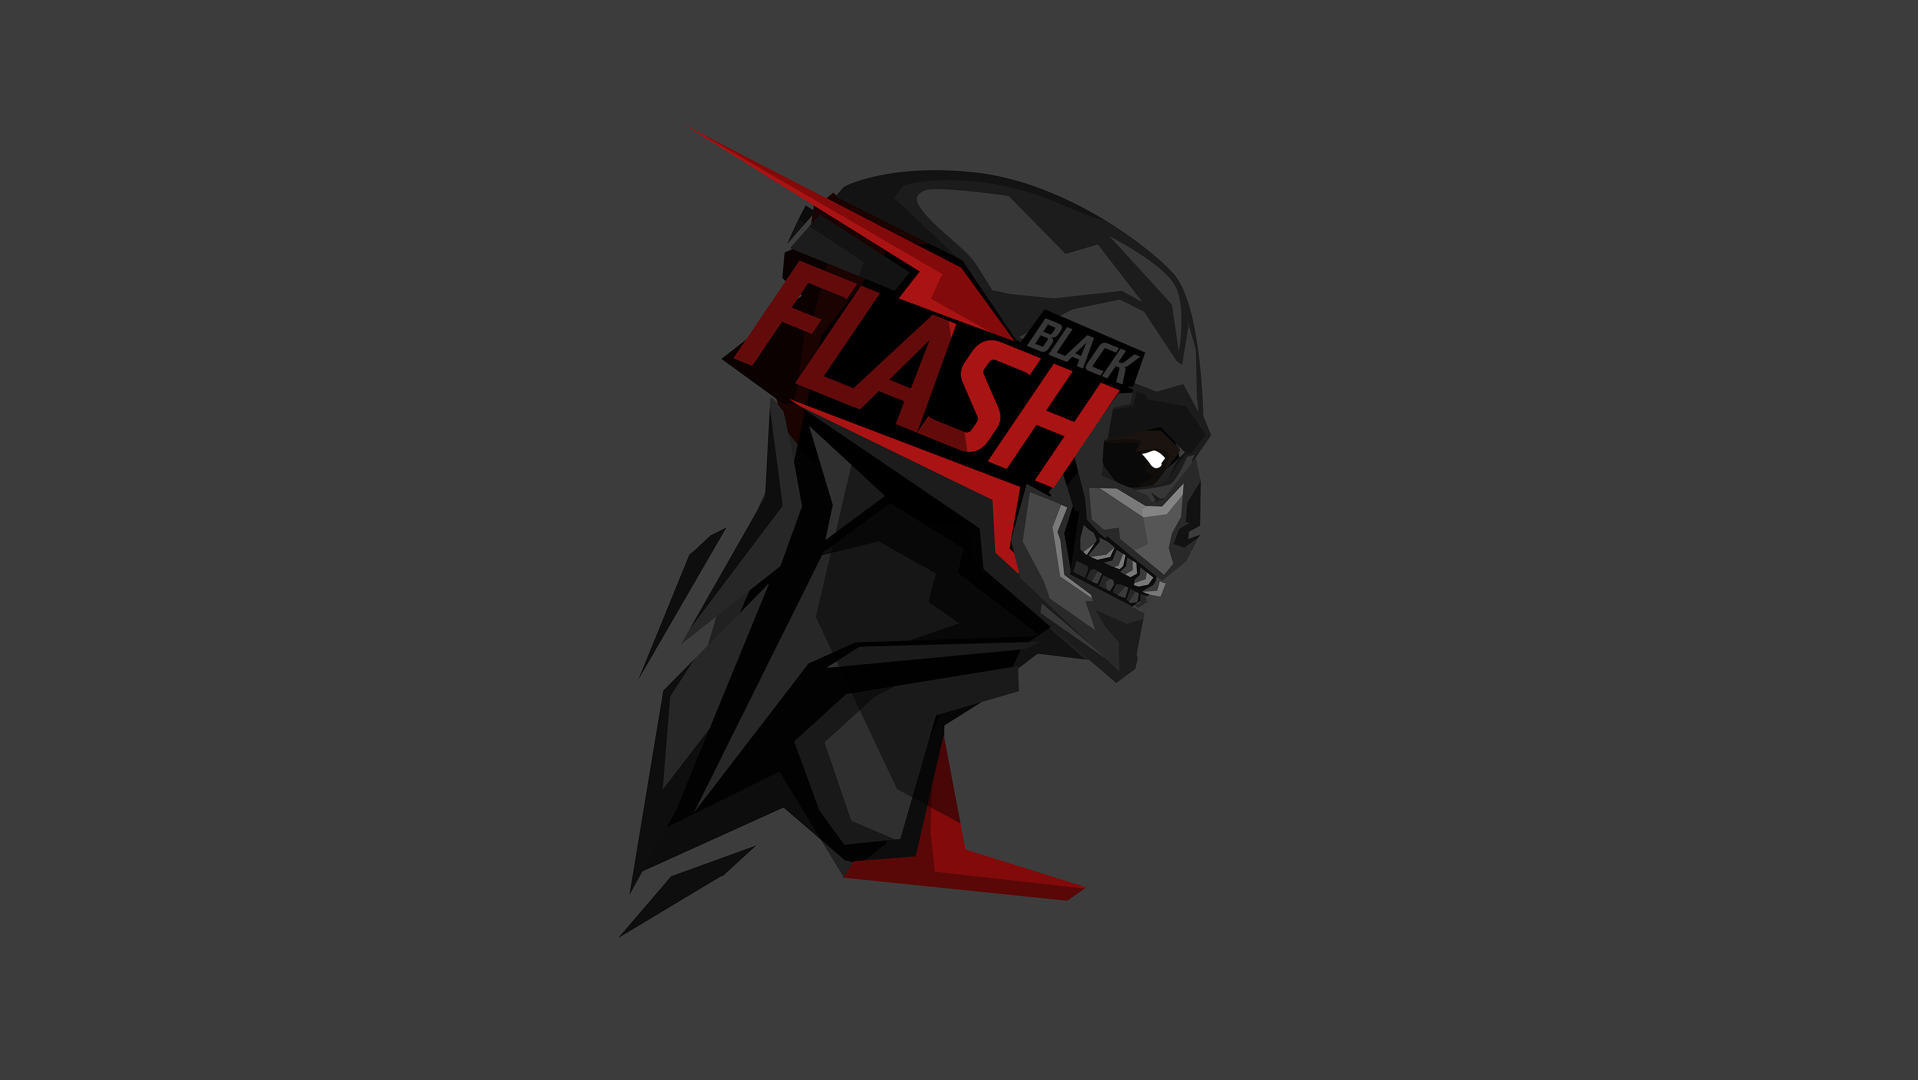 3 Black Flash Hd Wallpapers Background Images Wallpaper Abyss